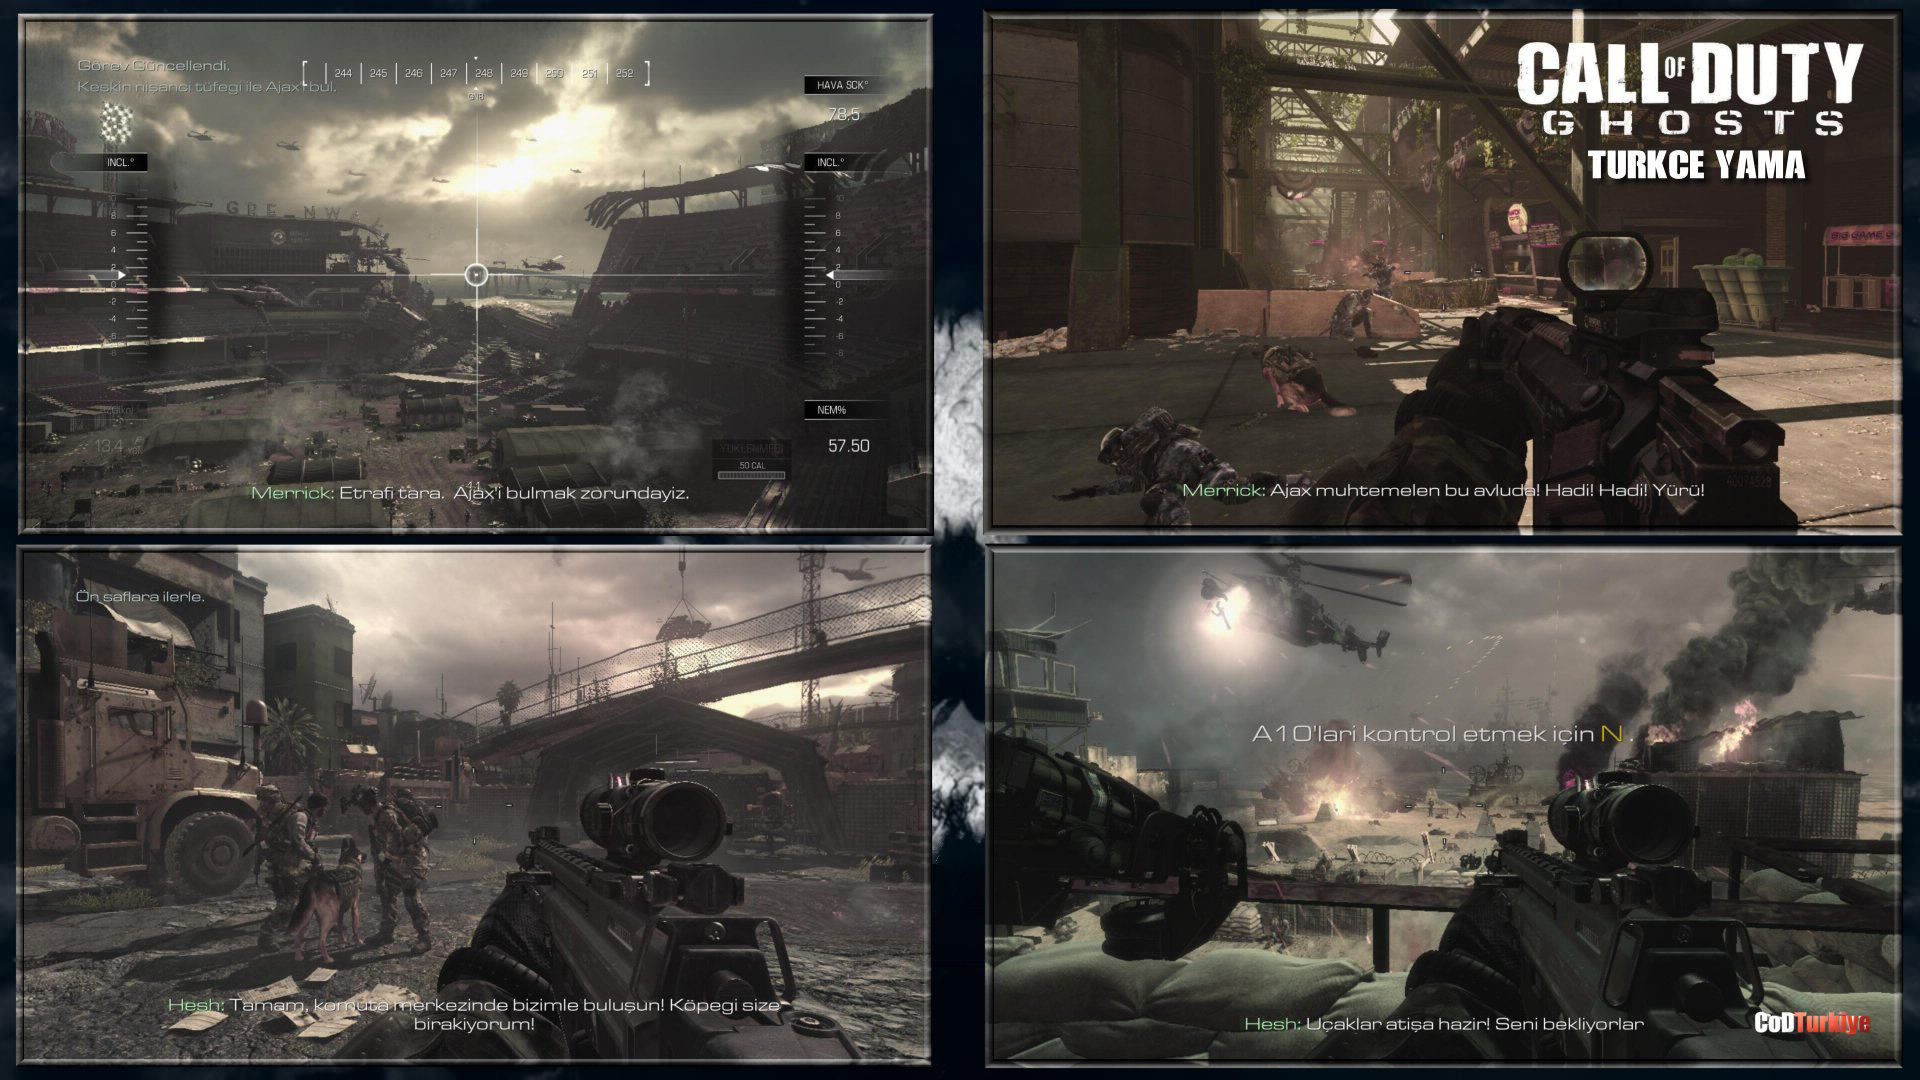 Call of Duty Ghosts Türkçe Yama Gameplay